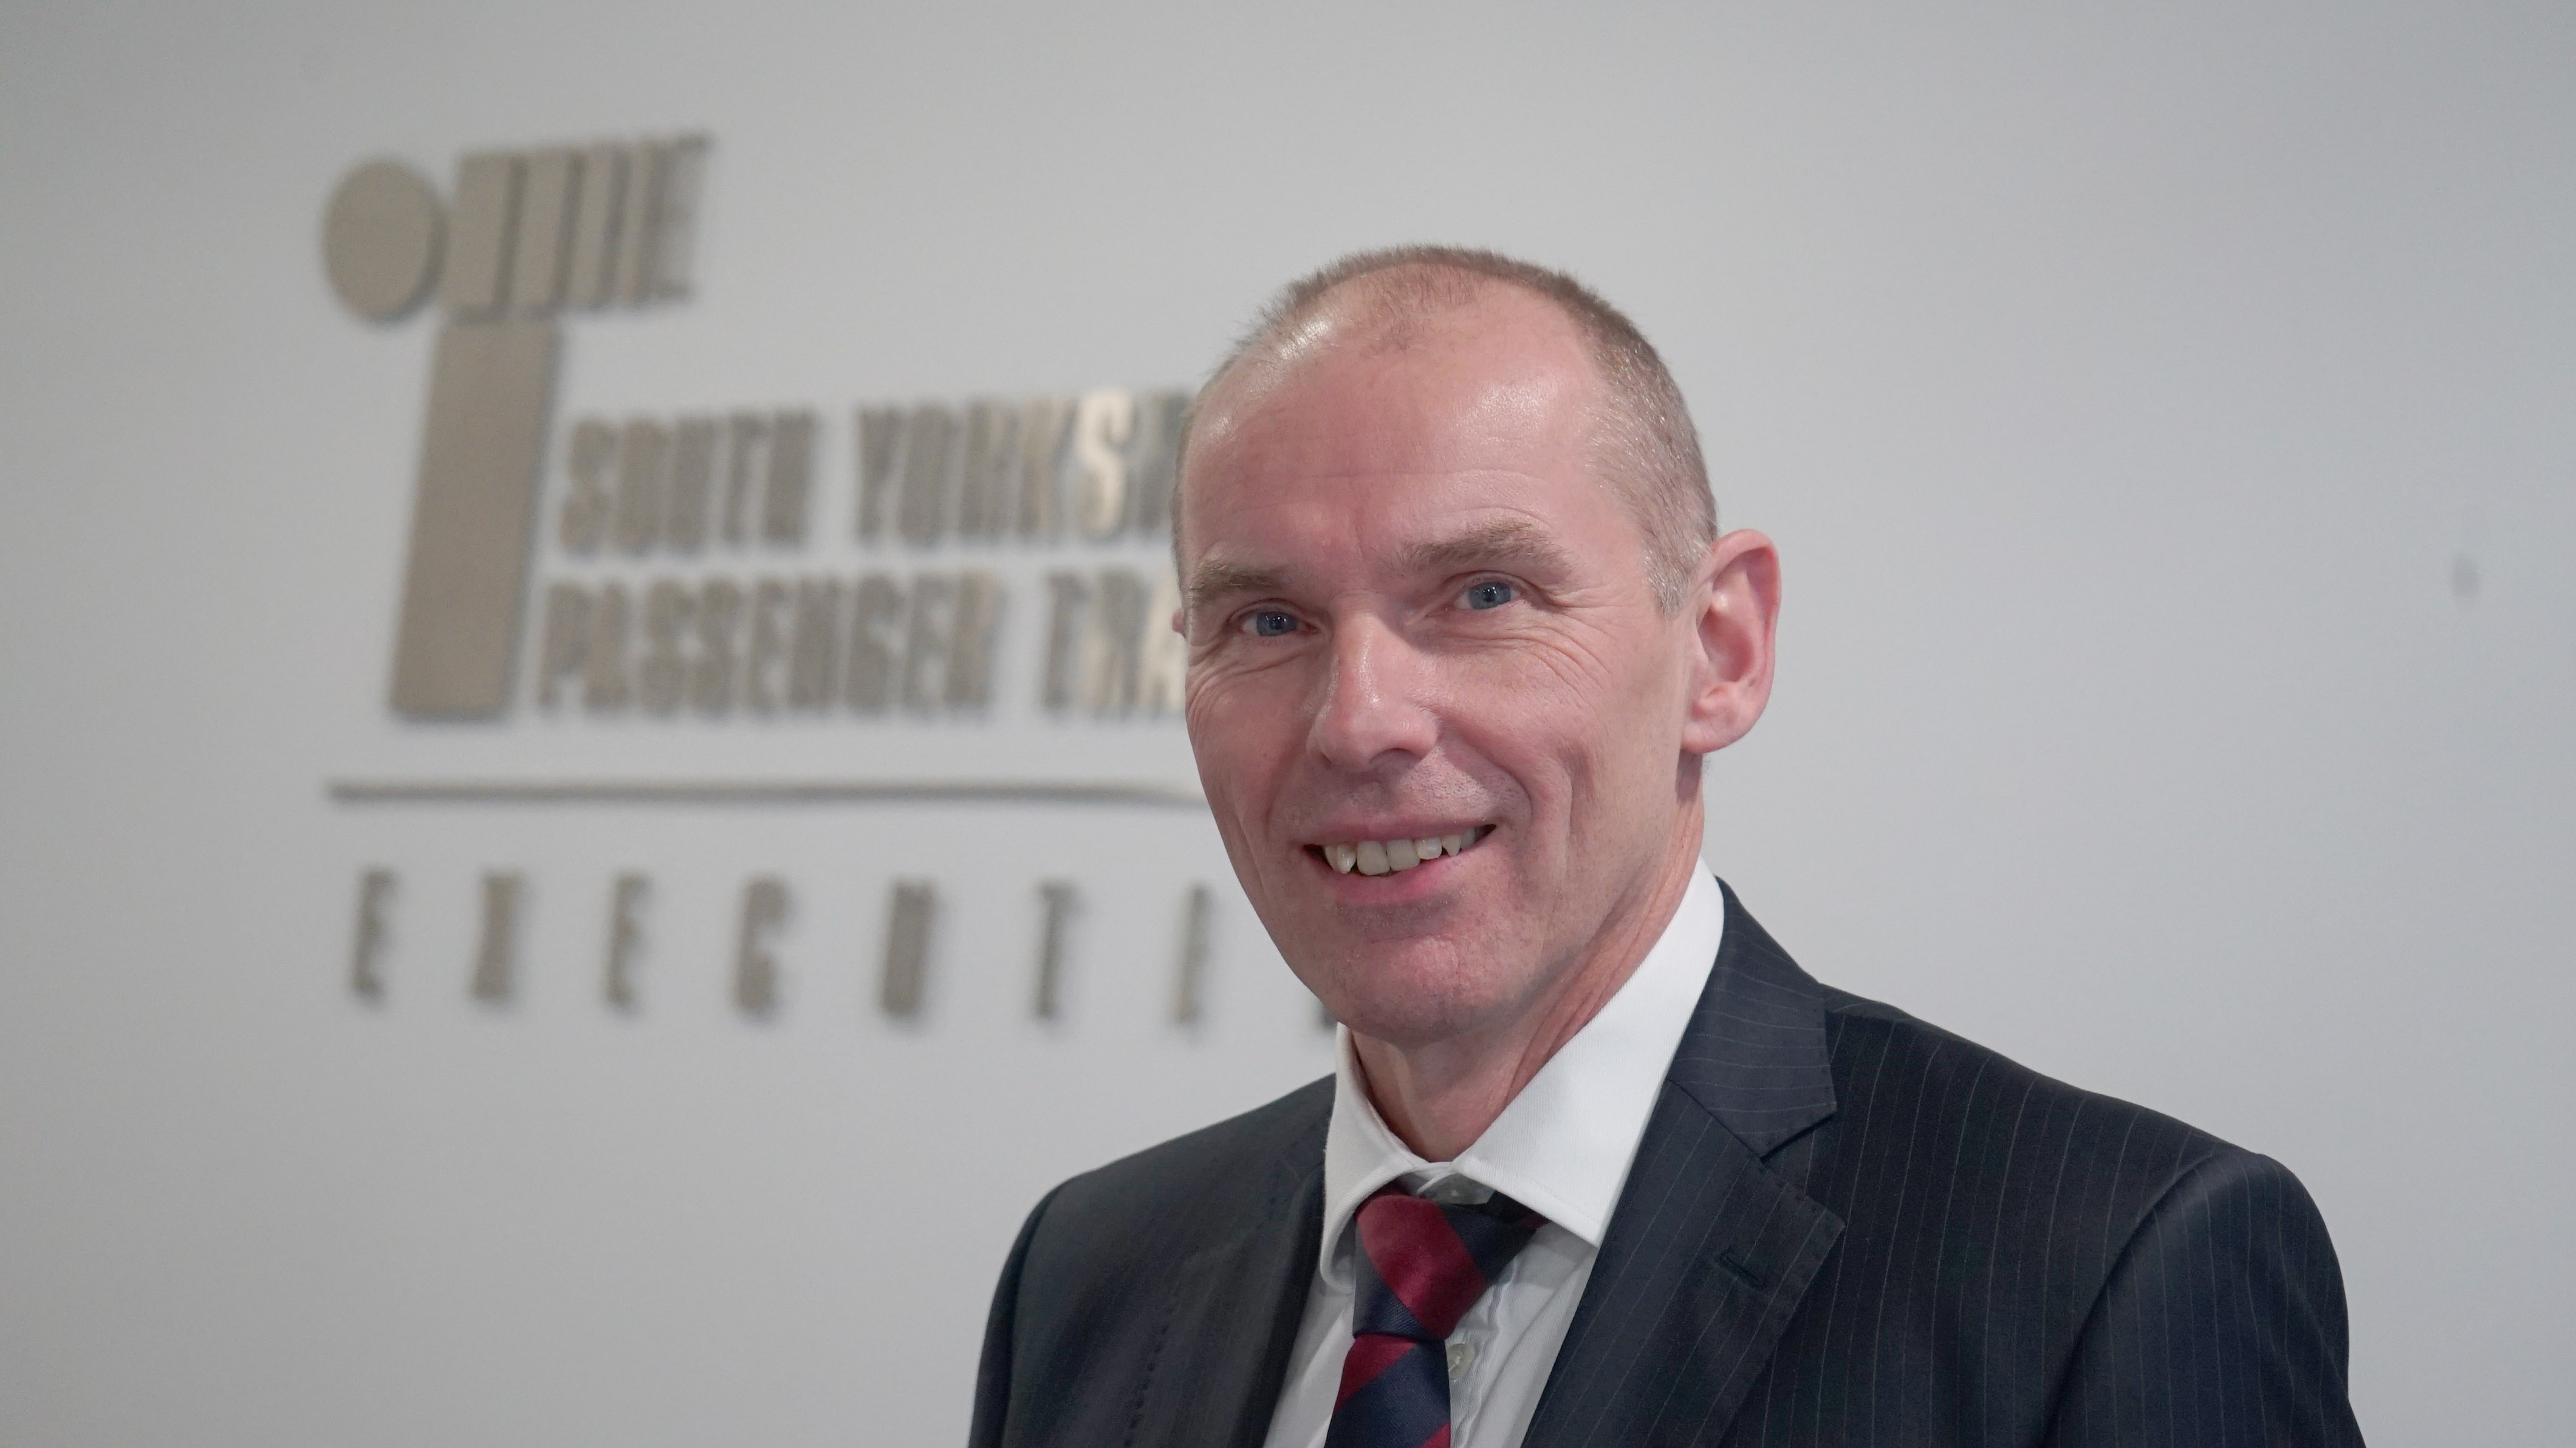 South Yorkshire transport chief is new Chair of Urban Transport Group